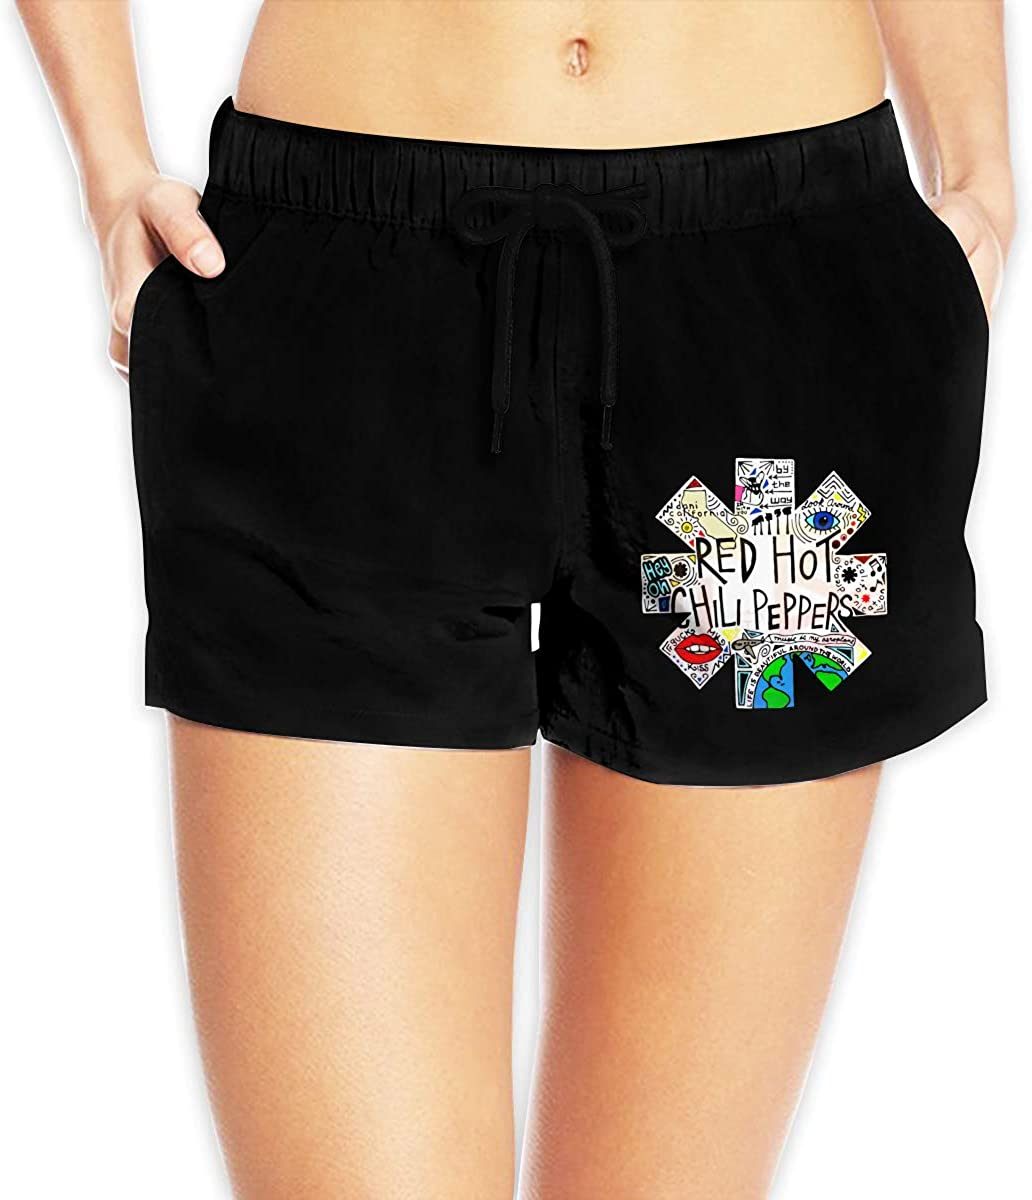 Women Sexy Hot Pants Summer Casual Shorts Red Hot Chili Peppers Short Beach Trousers